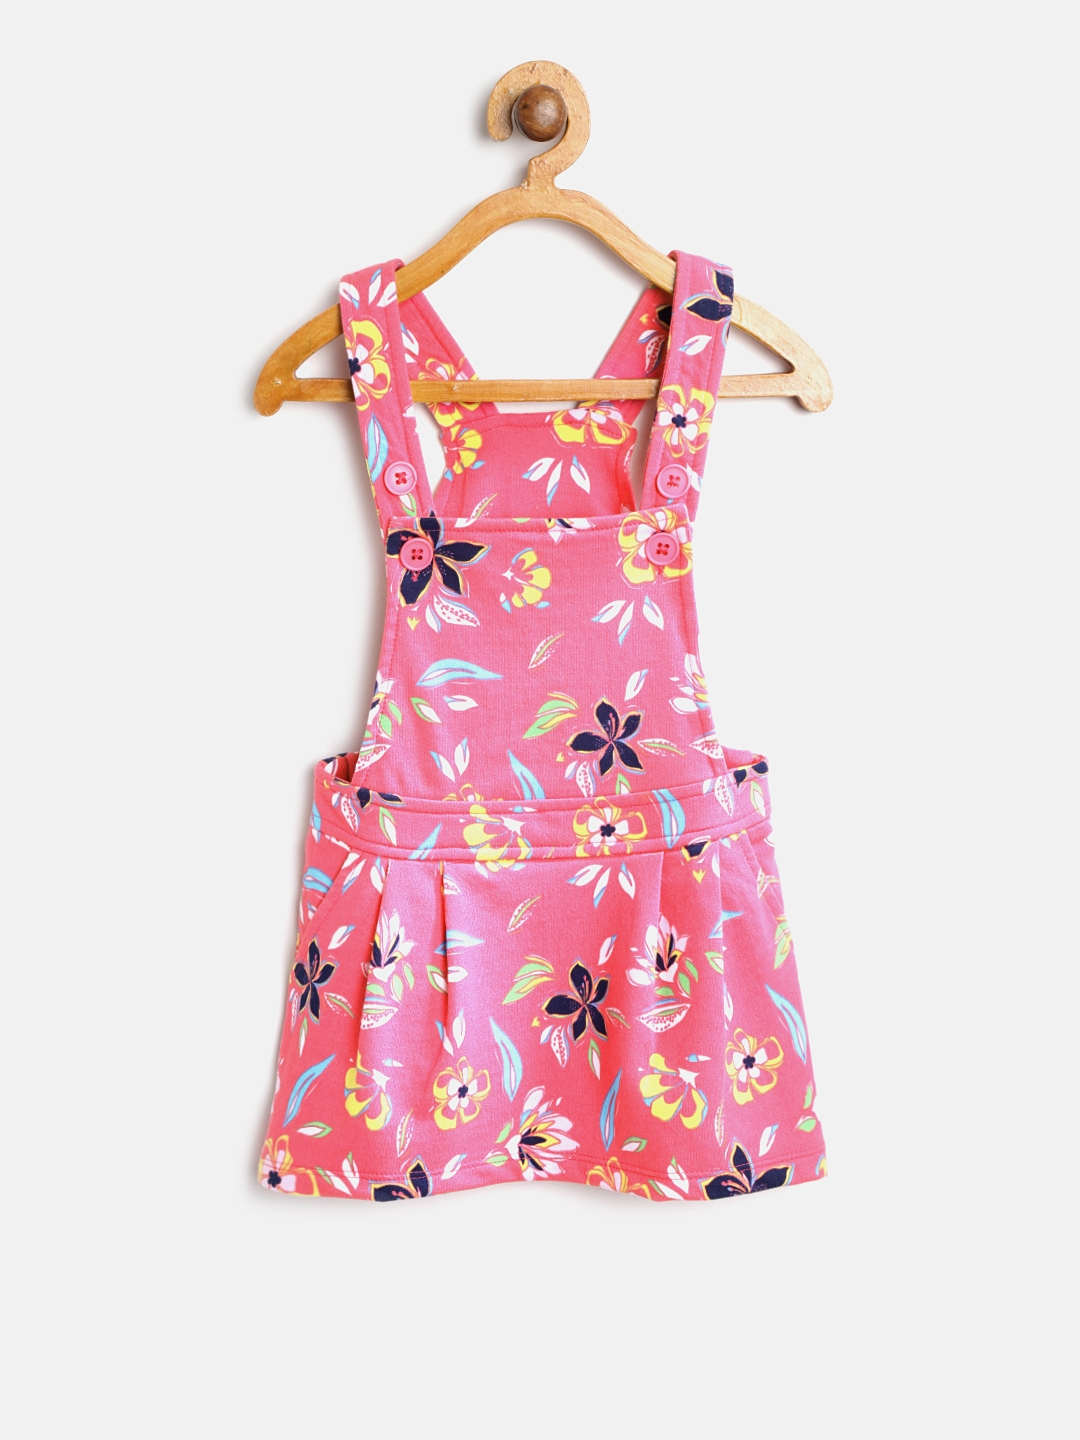 f441ef4a36de Buy United Colors Of Benetton Girls Pink Floral Print Pinafore Dress ...